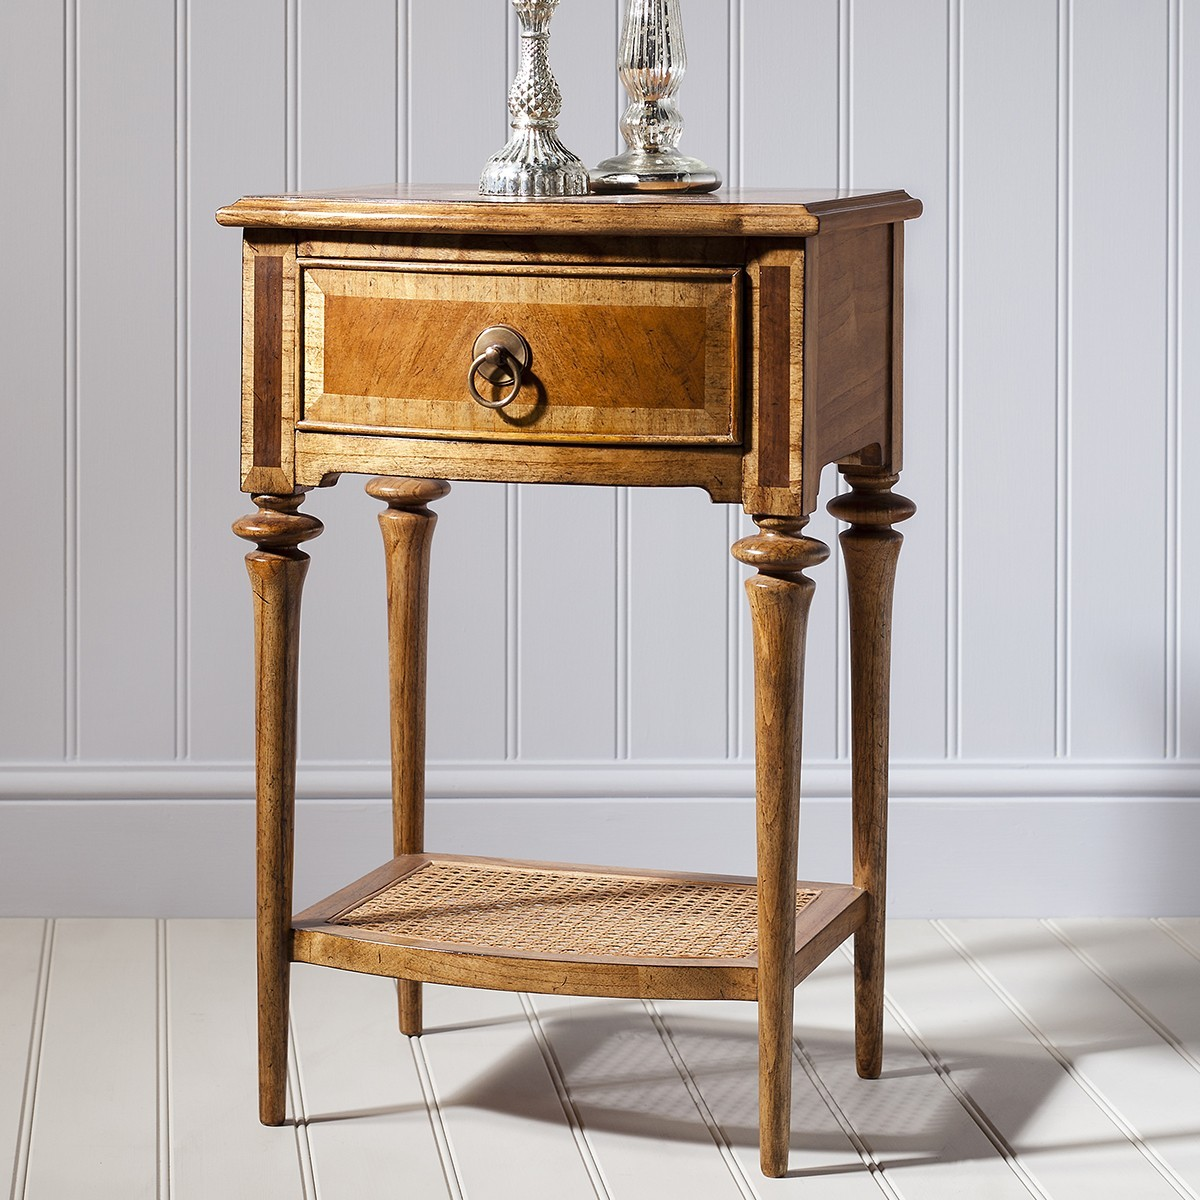 Spire Timber Single Drawer Bedside Table with Cane Shelf